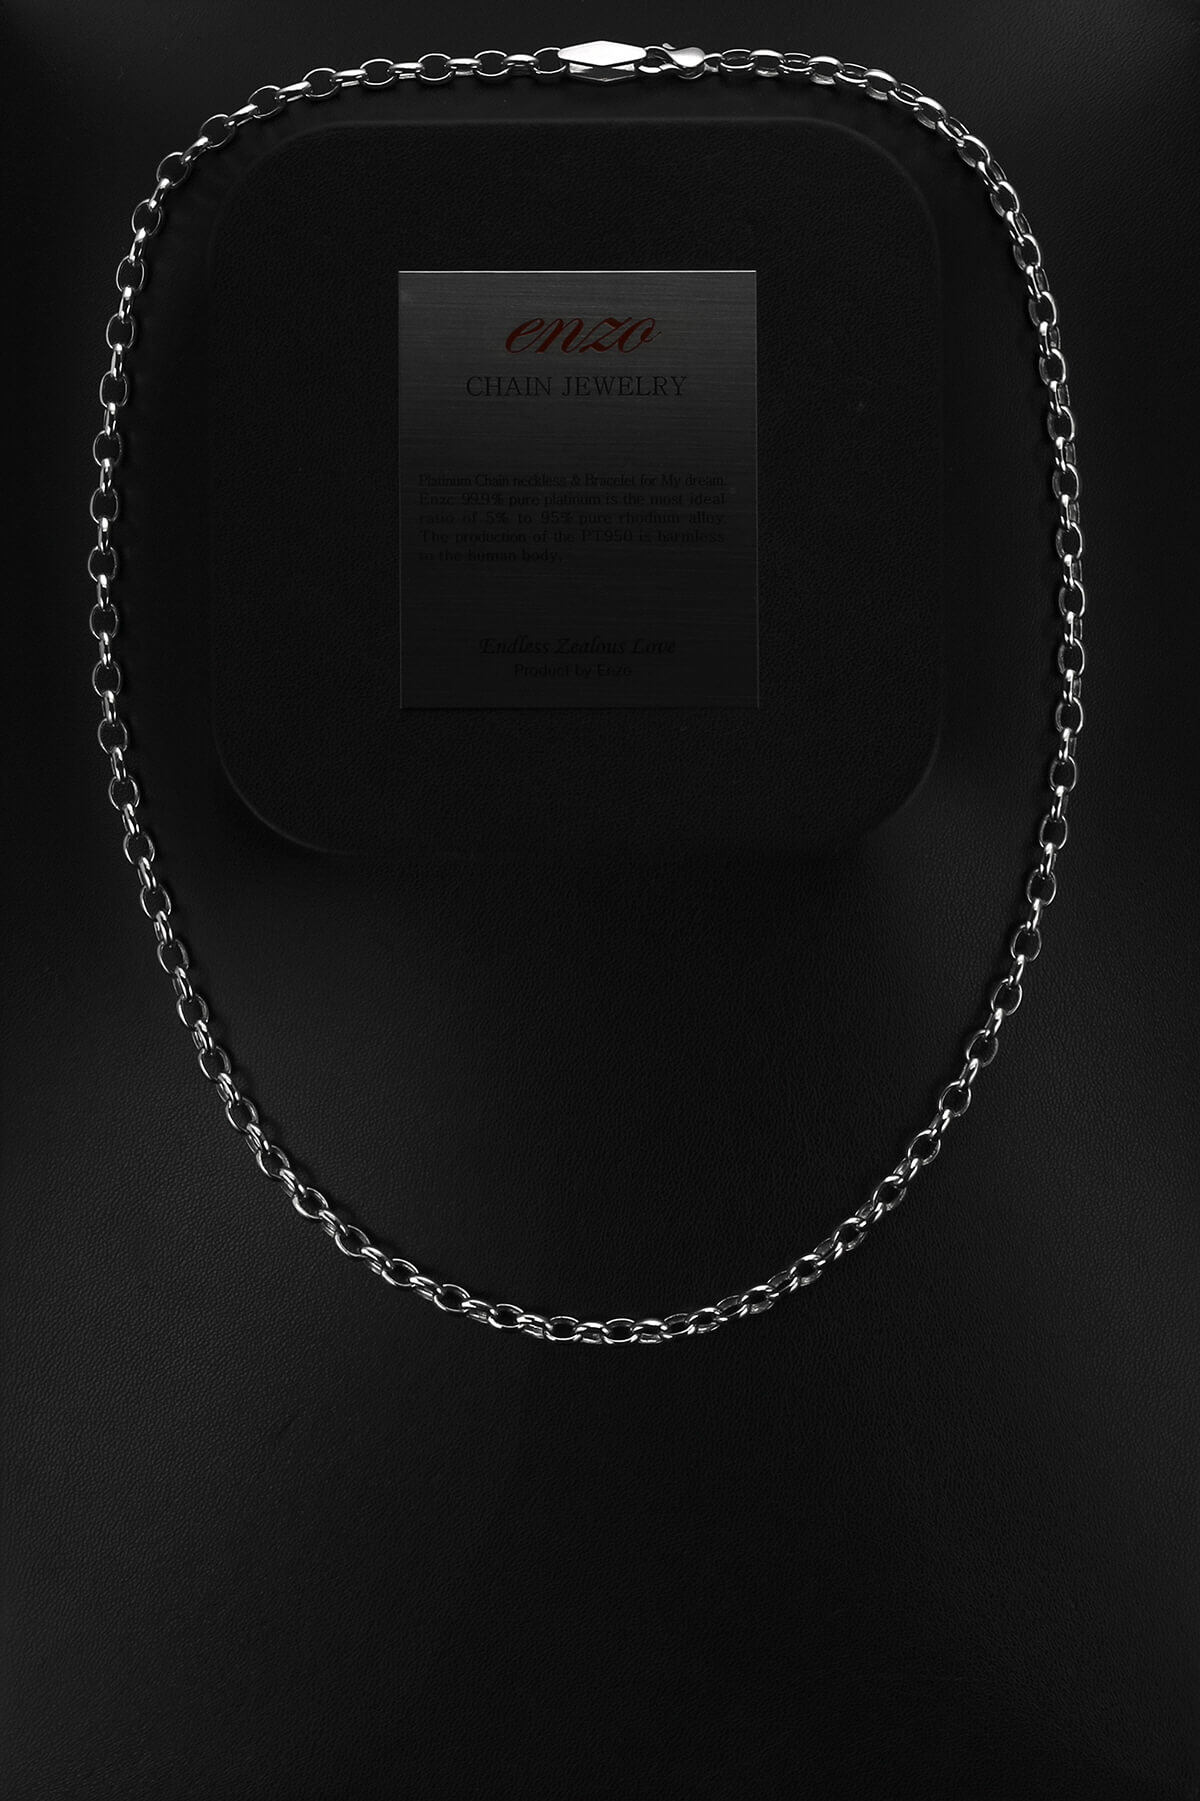 men's platinum cable chain necklace chain for men from ByEnzo Jewelry